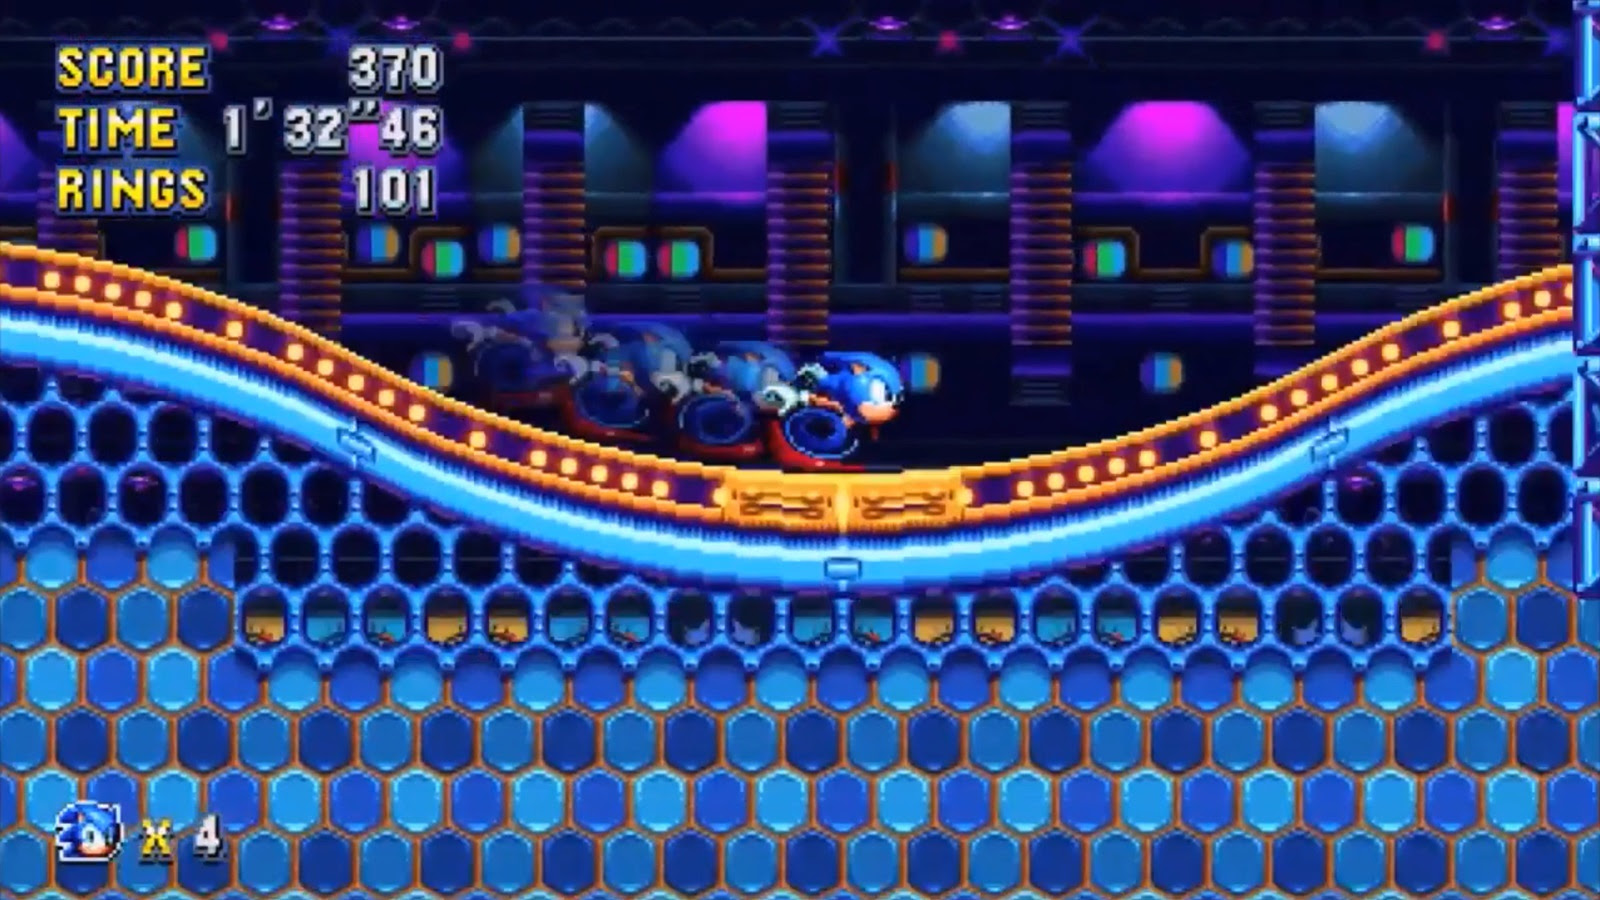 Kick off your weekend with this Sonic Mania jam screenshot